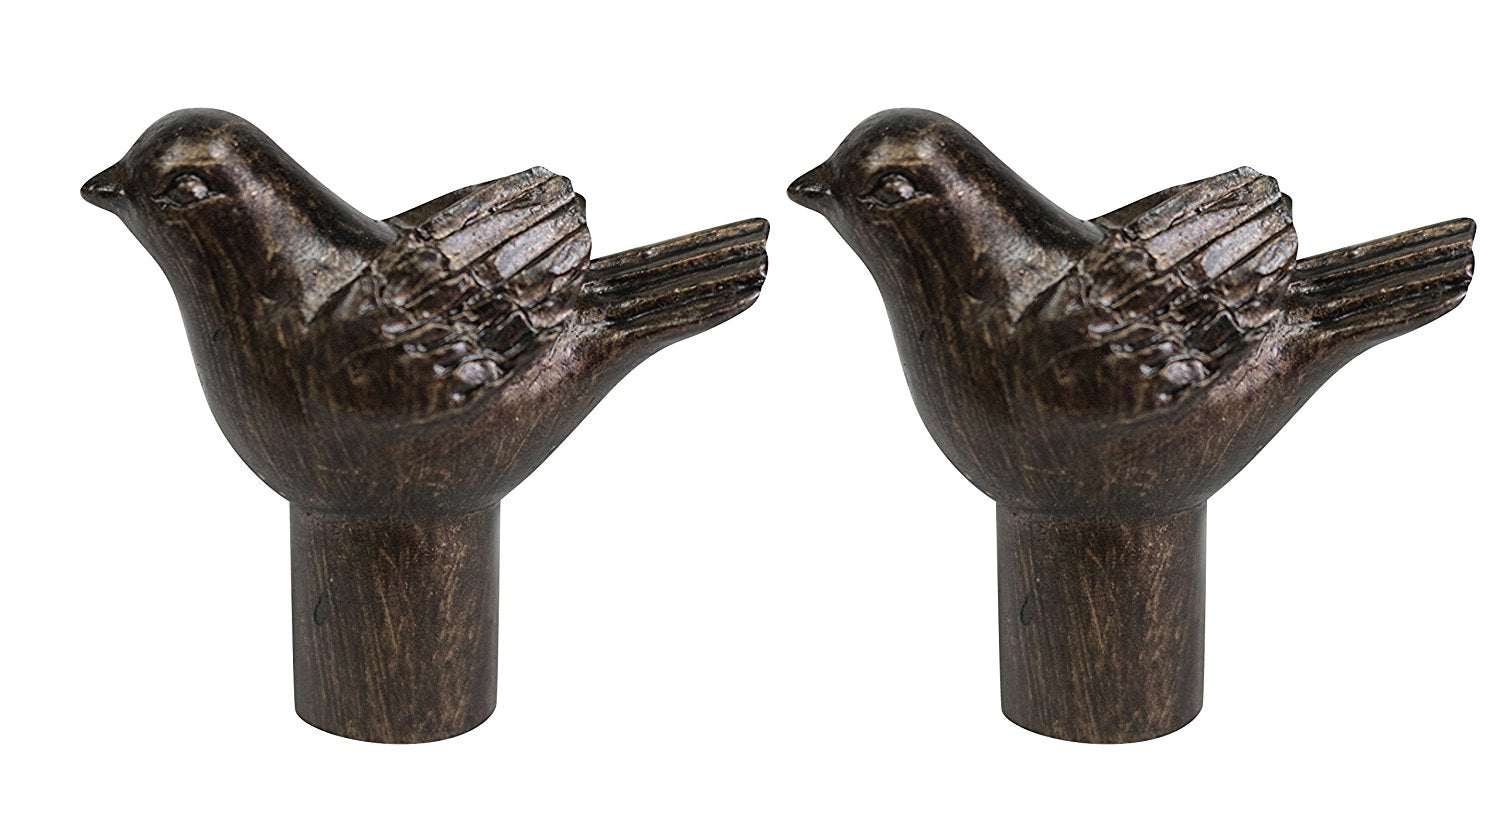 Bird Lamp Finial - 4 Finishes